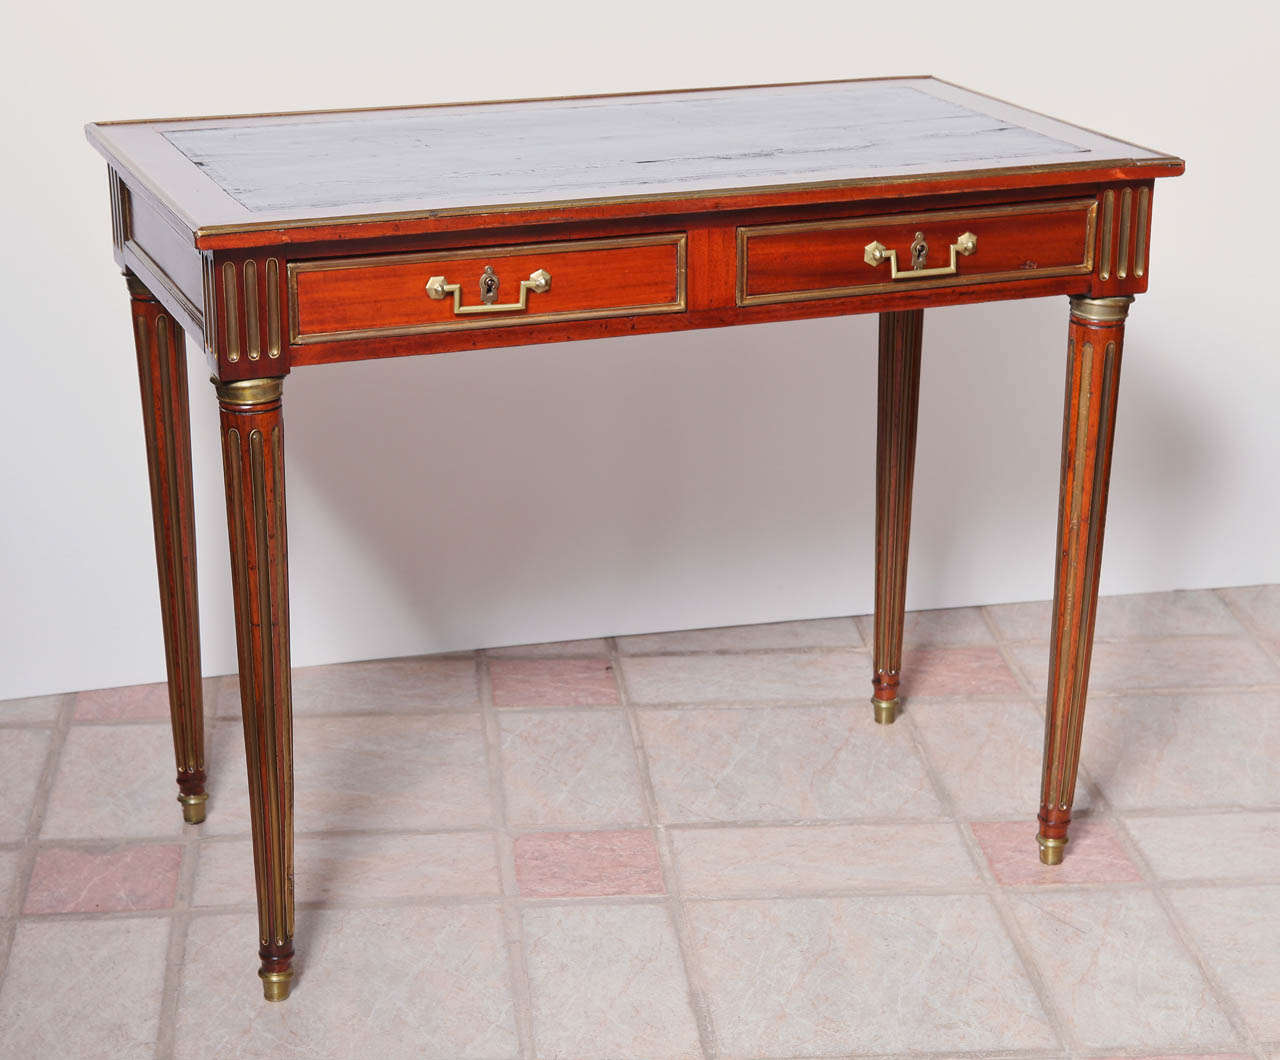 19th C Russian Leather Topped Writing Desk With Hand Hammered Brass Details